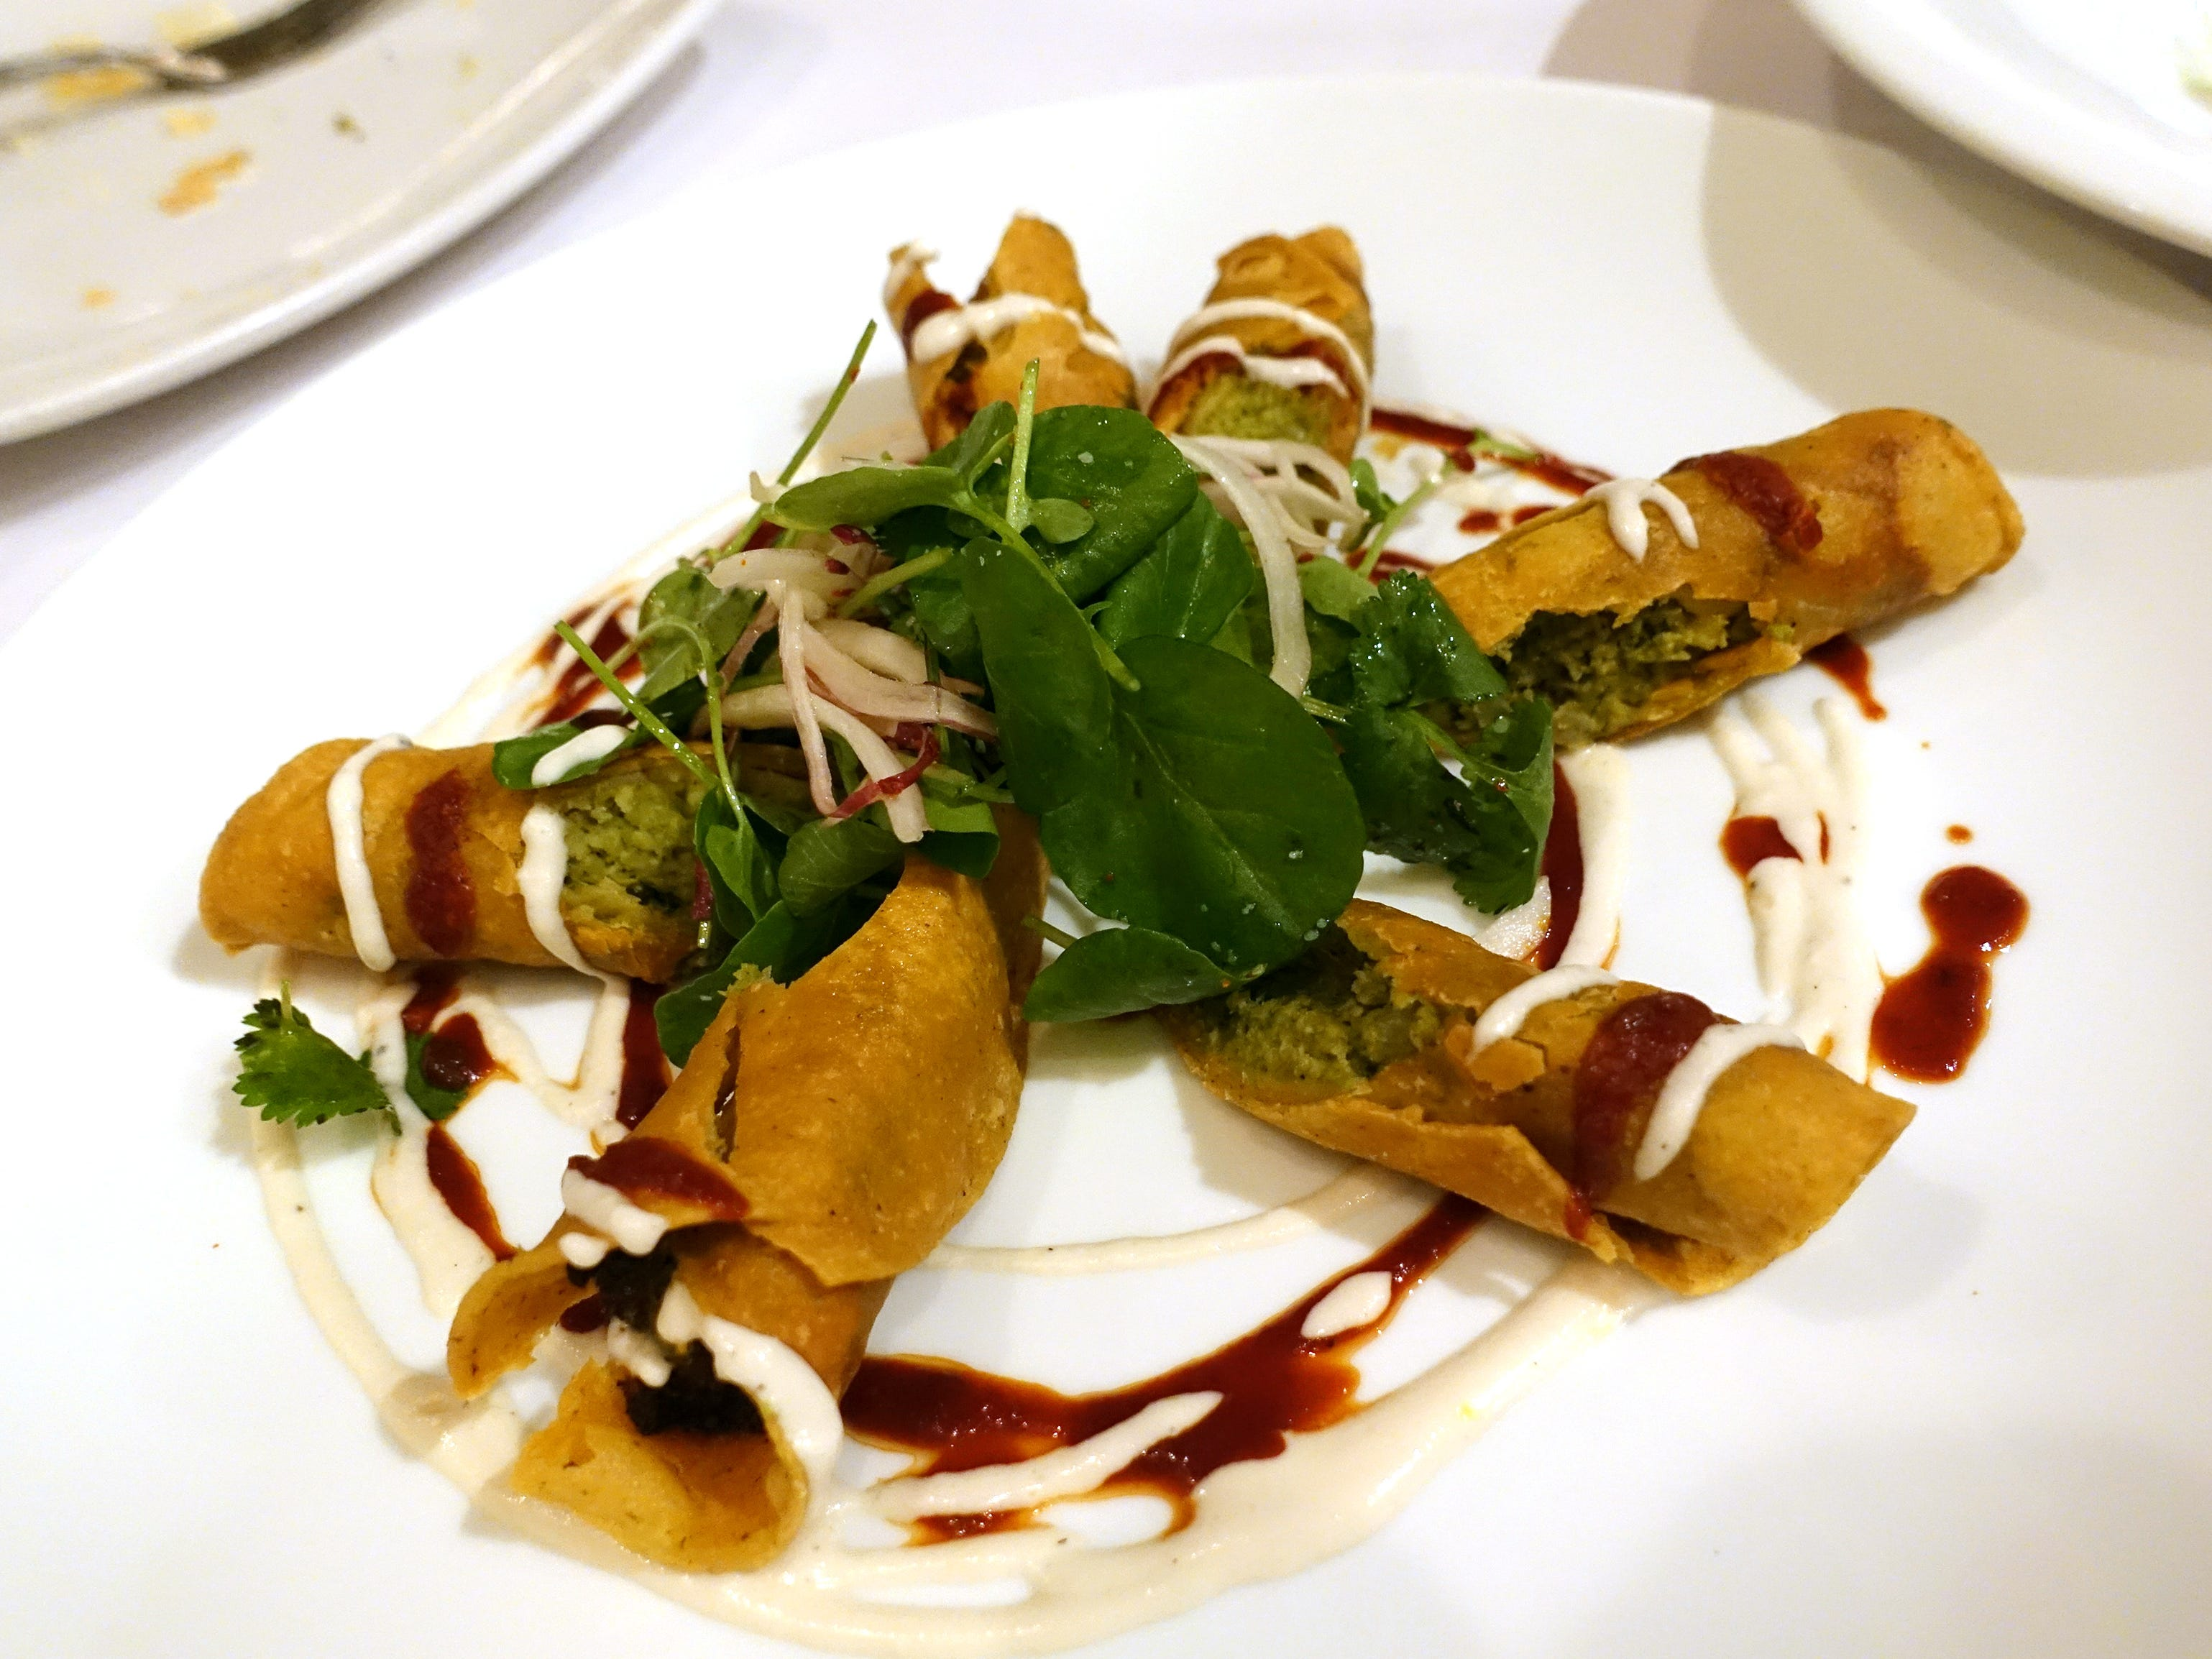 Tempe chorizo verde flautas with Castelvetrano olives, cascabel harissa and crema at Casa Terra in Glendale.